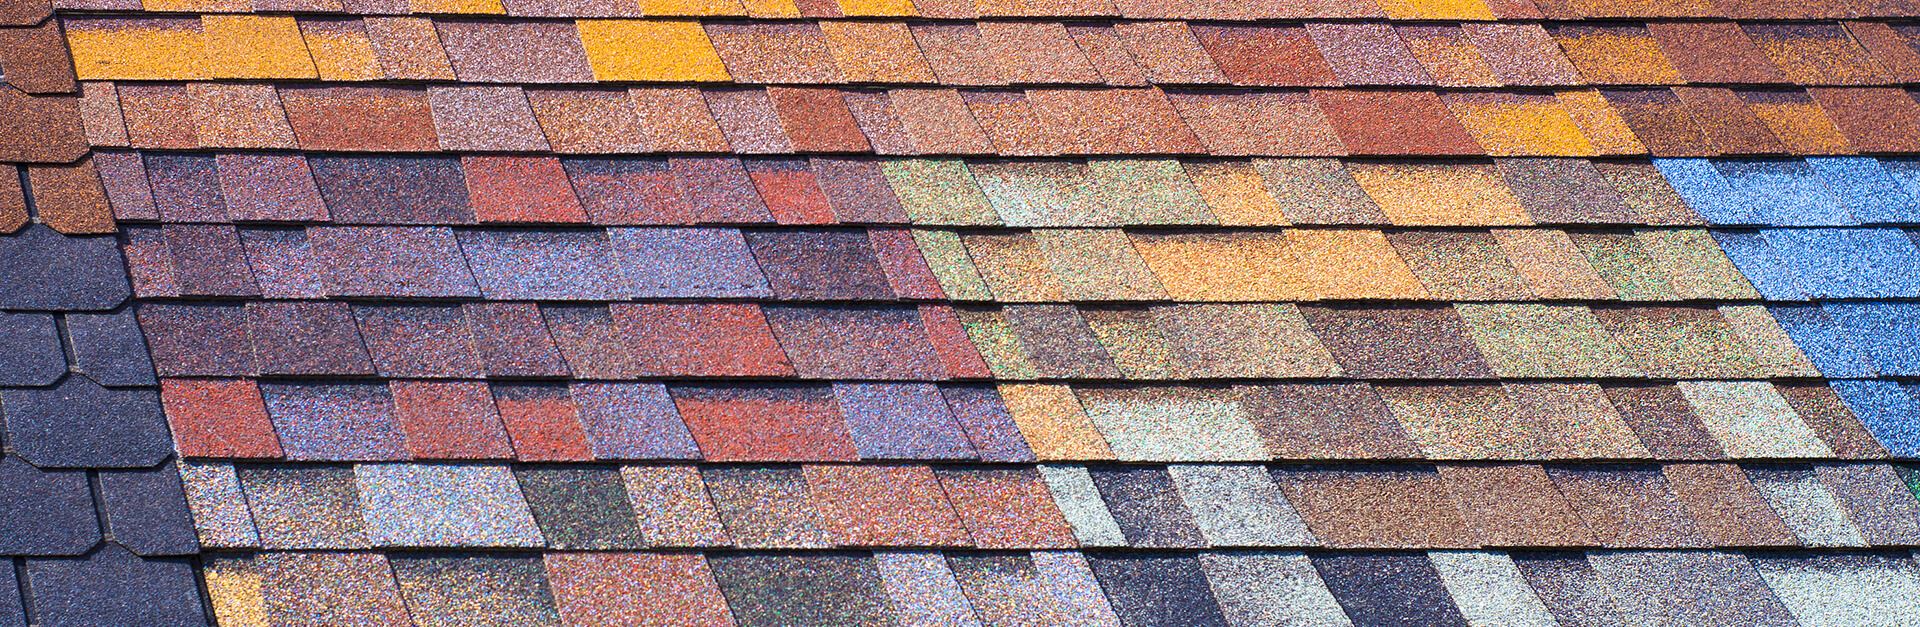 Types Of Roofing Coxco Roofing Richardson Tx